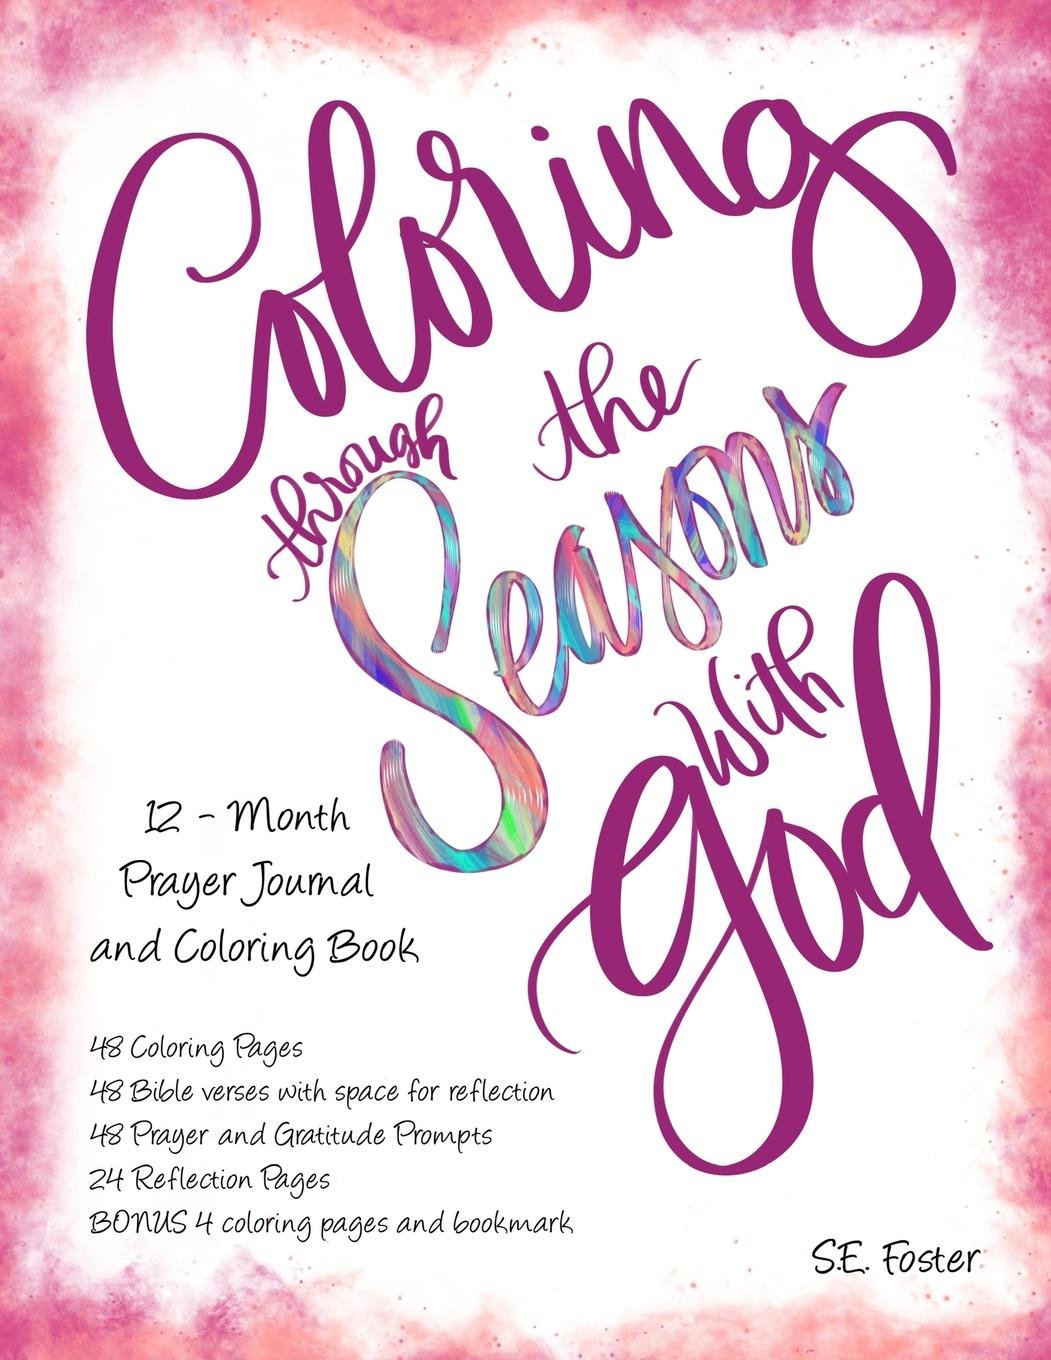 Coloring Through the Seasons with God: 12 - Month Prayer Journal with Coloring Pages PDF